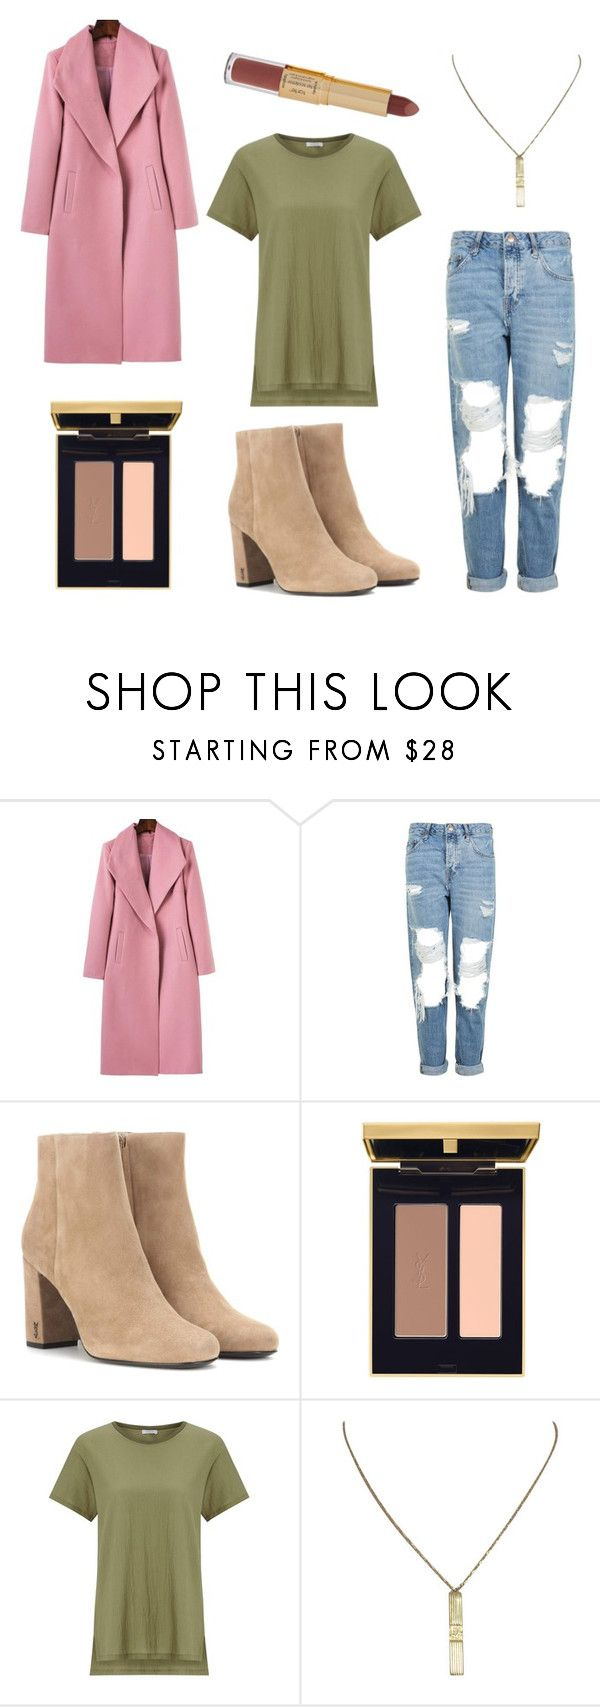 """""""Untitled #94"""" by marugc ❤ liked on Polyvore featuring Topshop, Yves Saint Laurent, Jigsaw, Christian Dior and tarte"""